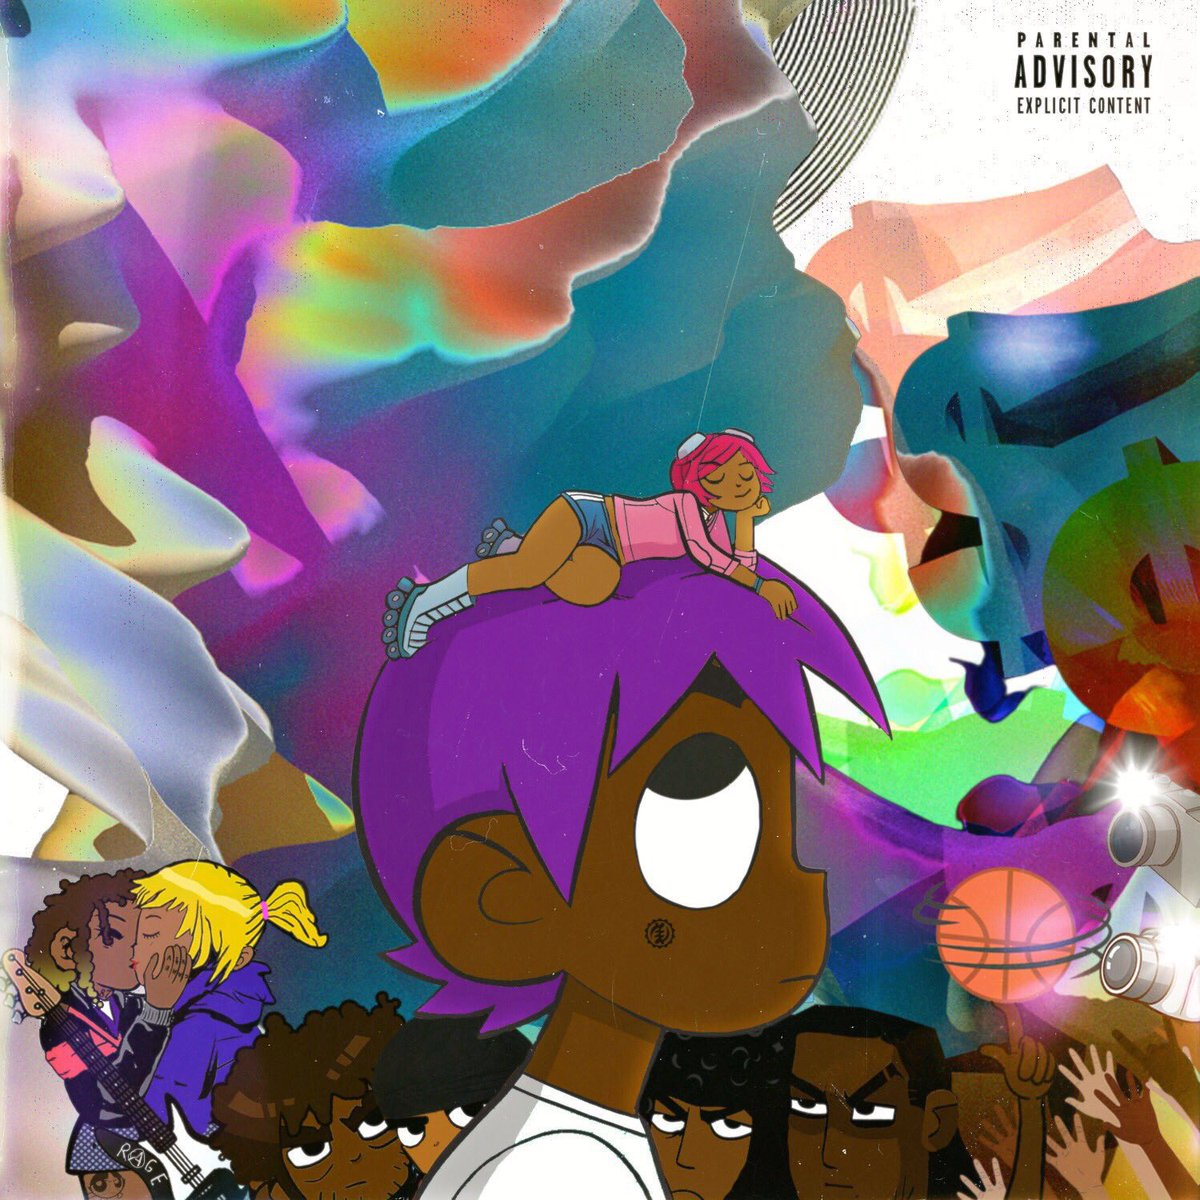 life was good when uzi dropped this